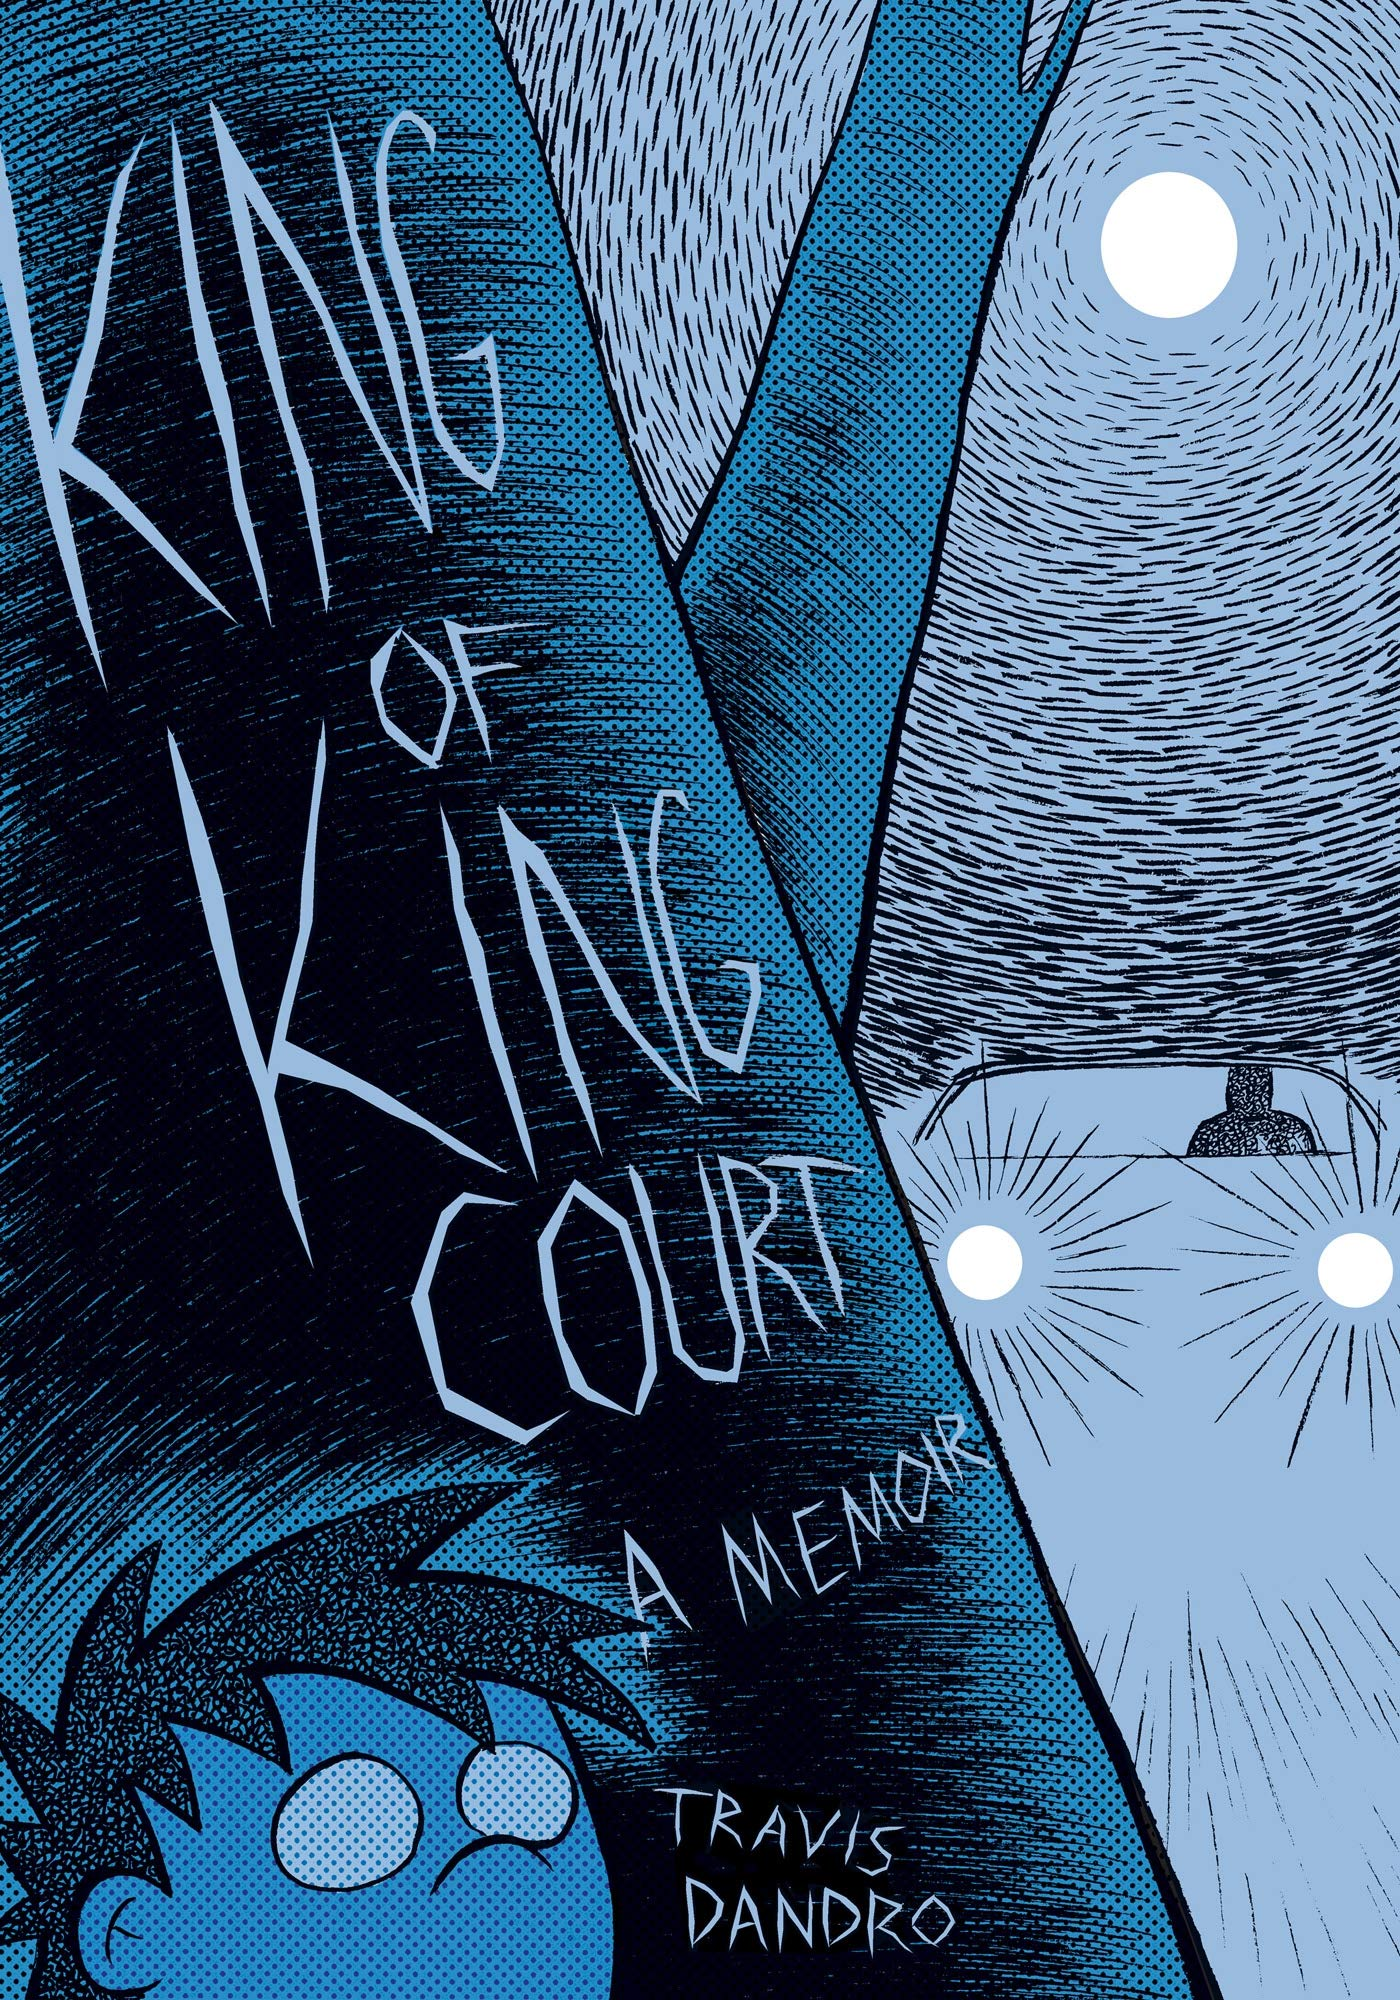 'King of King Court' by Travis Dandro